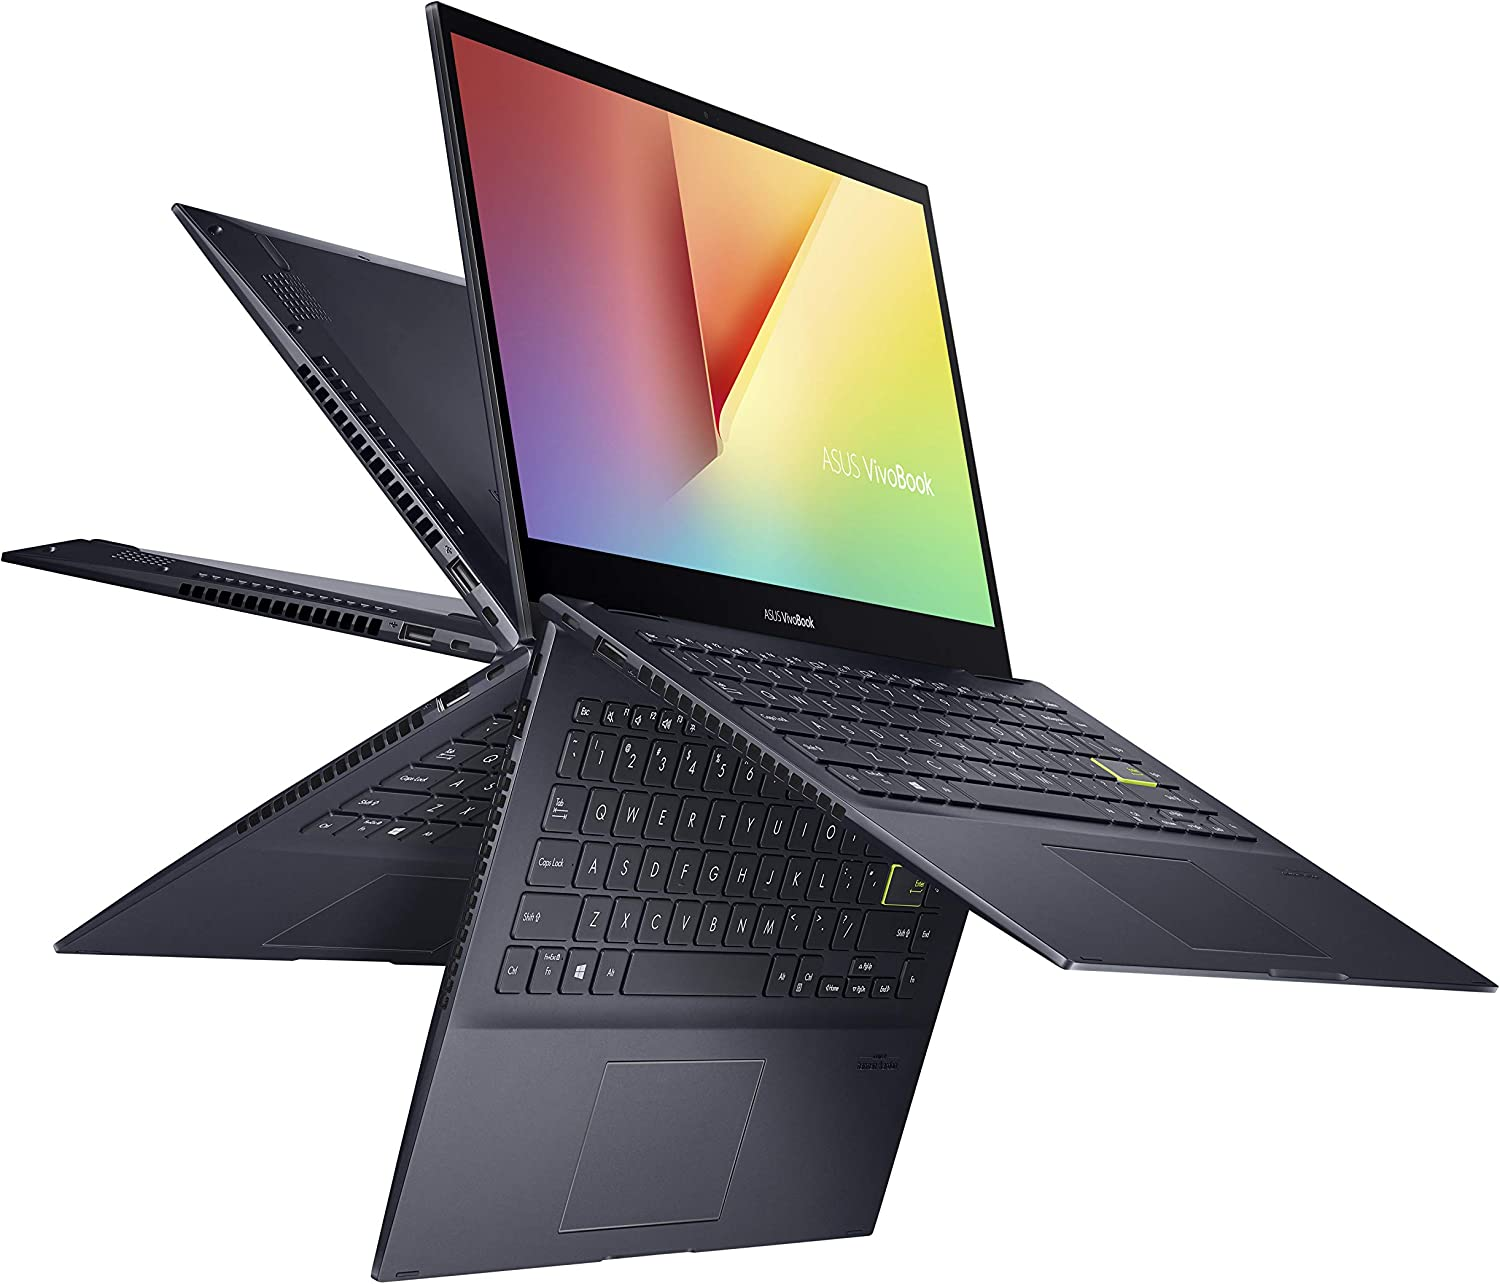 "ASUS VivoBook Flip 14 Thin and Light 2-in-1 Laptop, 14"" FHD Touch Display, AMD Ryzen 7 4700U, 8GB DDR4 RAM, 512GB SSD, Glossy, Stylus, Windows 10 Home, Fingerprint Reader, Bespoke Black, TM420IA-DB71T"